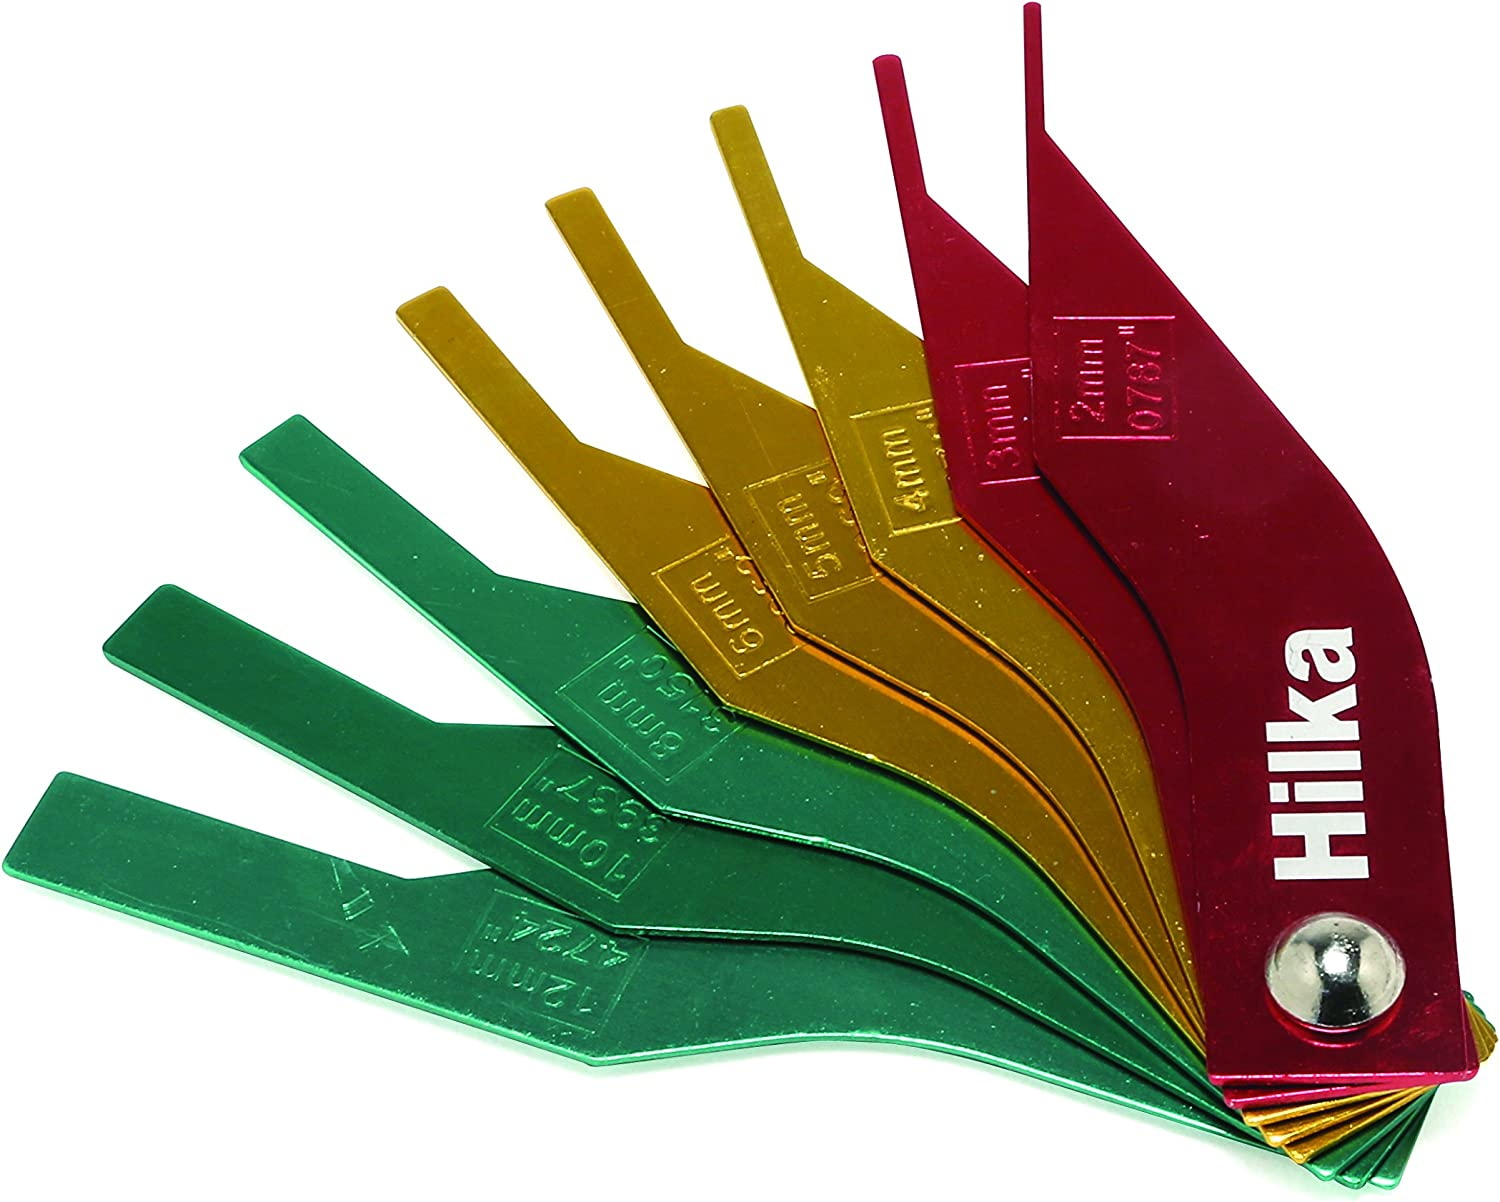 Car Brake Pad Feeler Lining Thickness Gauge Measure Tools 8 in1 Kit Colour Coded